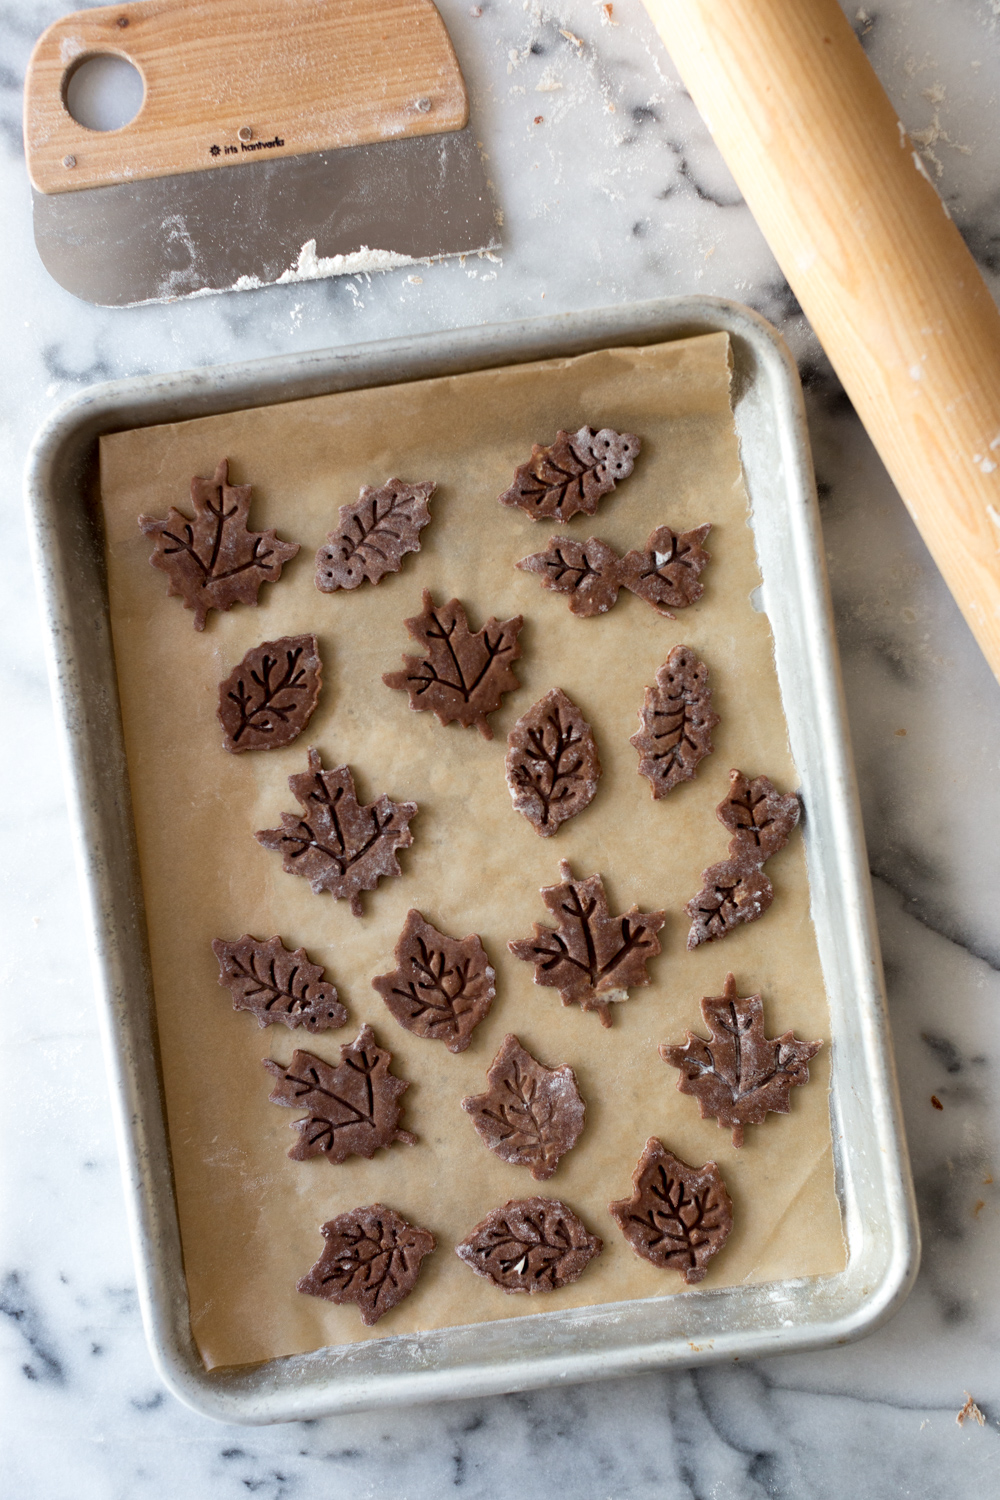 Chocolate Hazelnut Maple Bourbon Pie dough leaves.